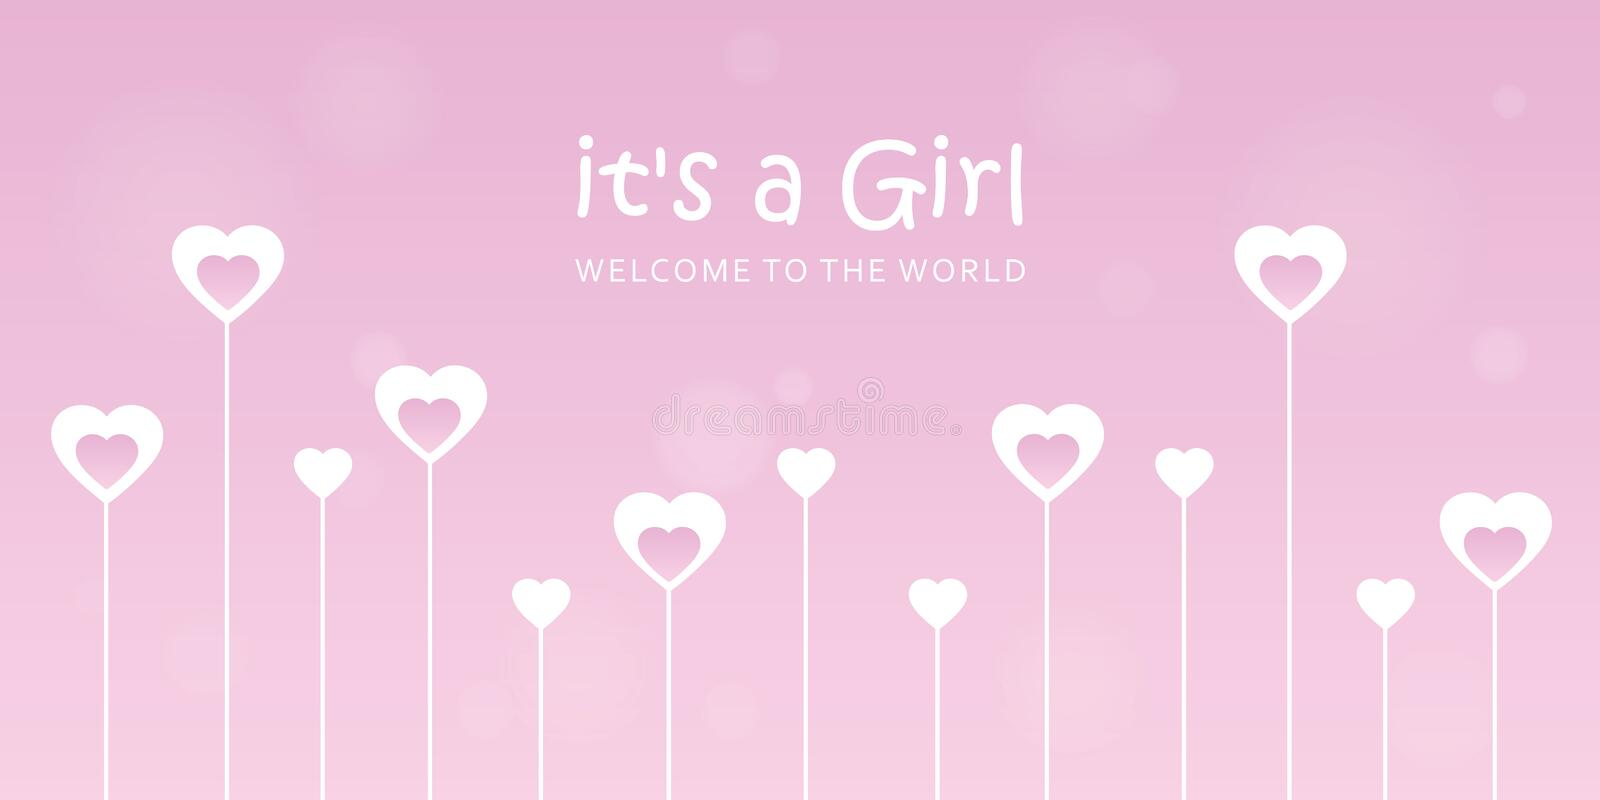 Its a girl welcome greeting card for childbirth with hearts. Vector illustration EPS10 vector illustration